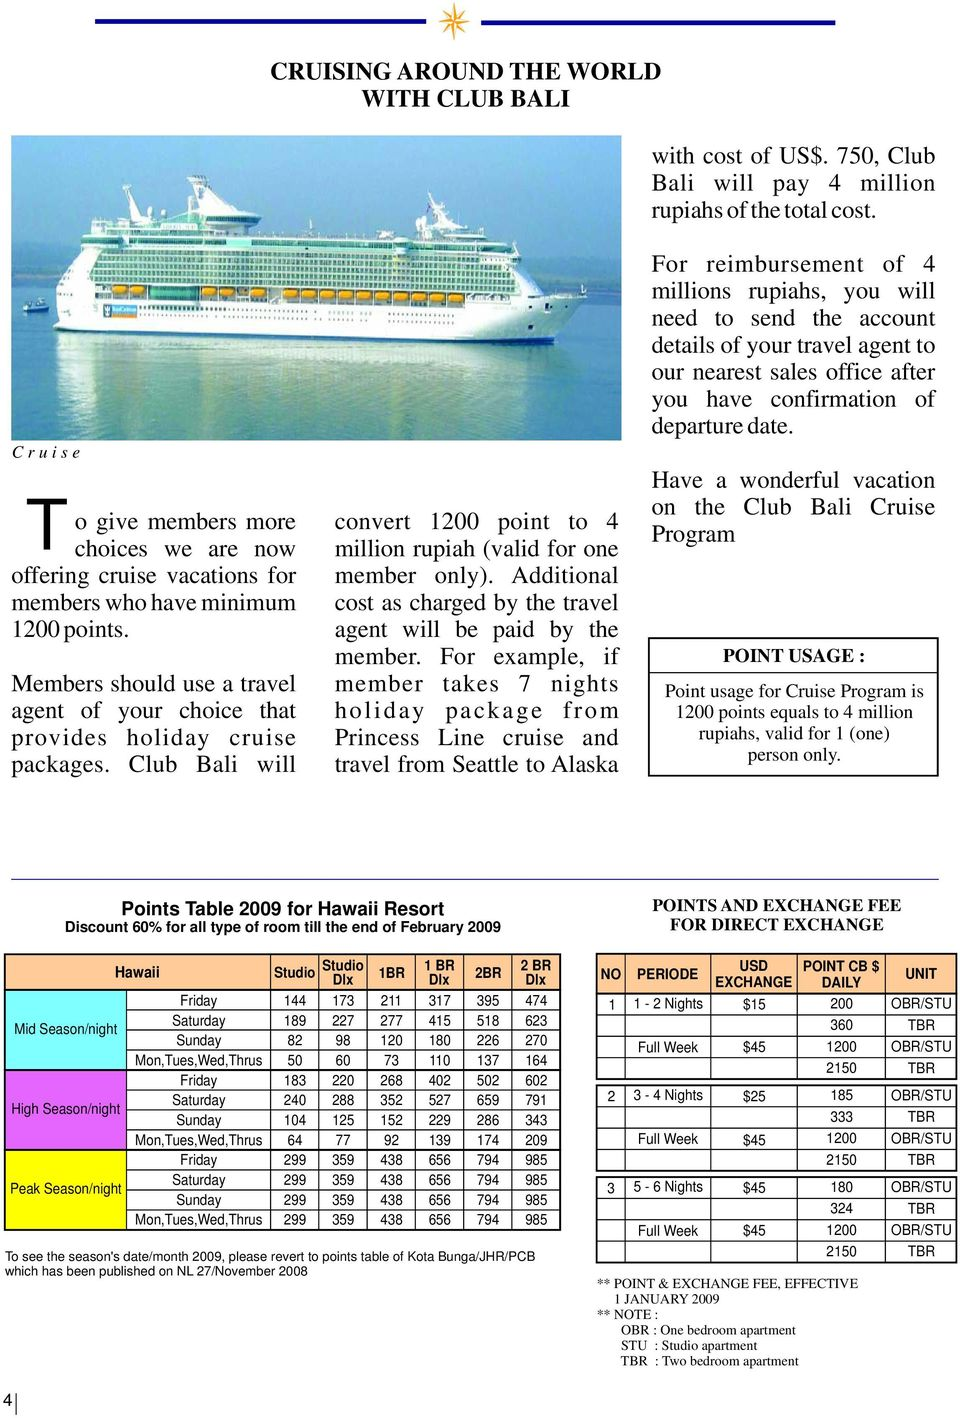 Members should use a travel agent of your choice that provides holiday cruise packages. Club Bali will convert 1200 point to 4 million rupiah (valid for one member only).